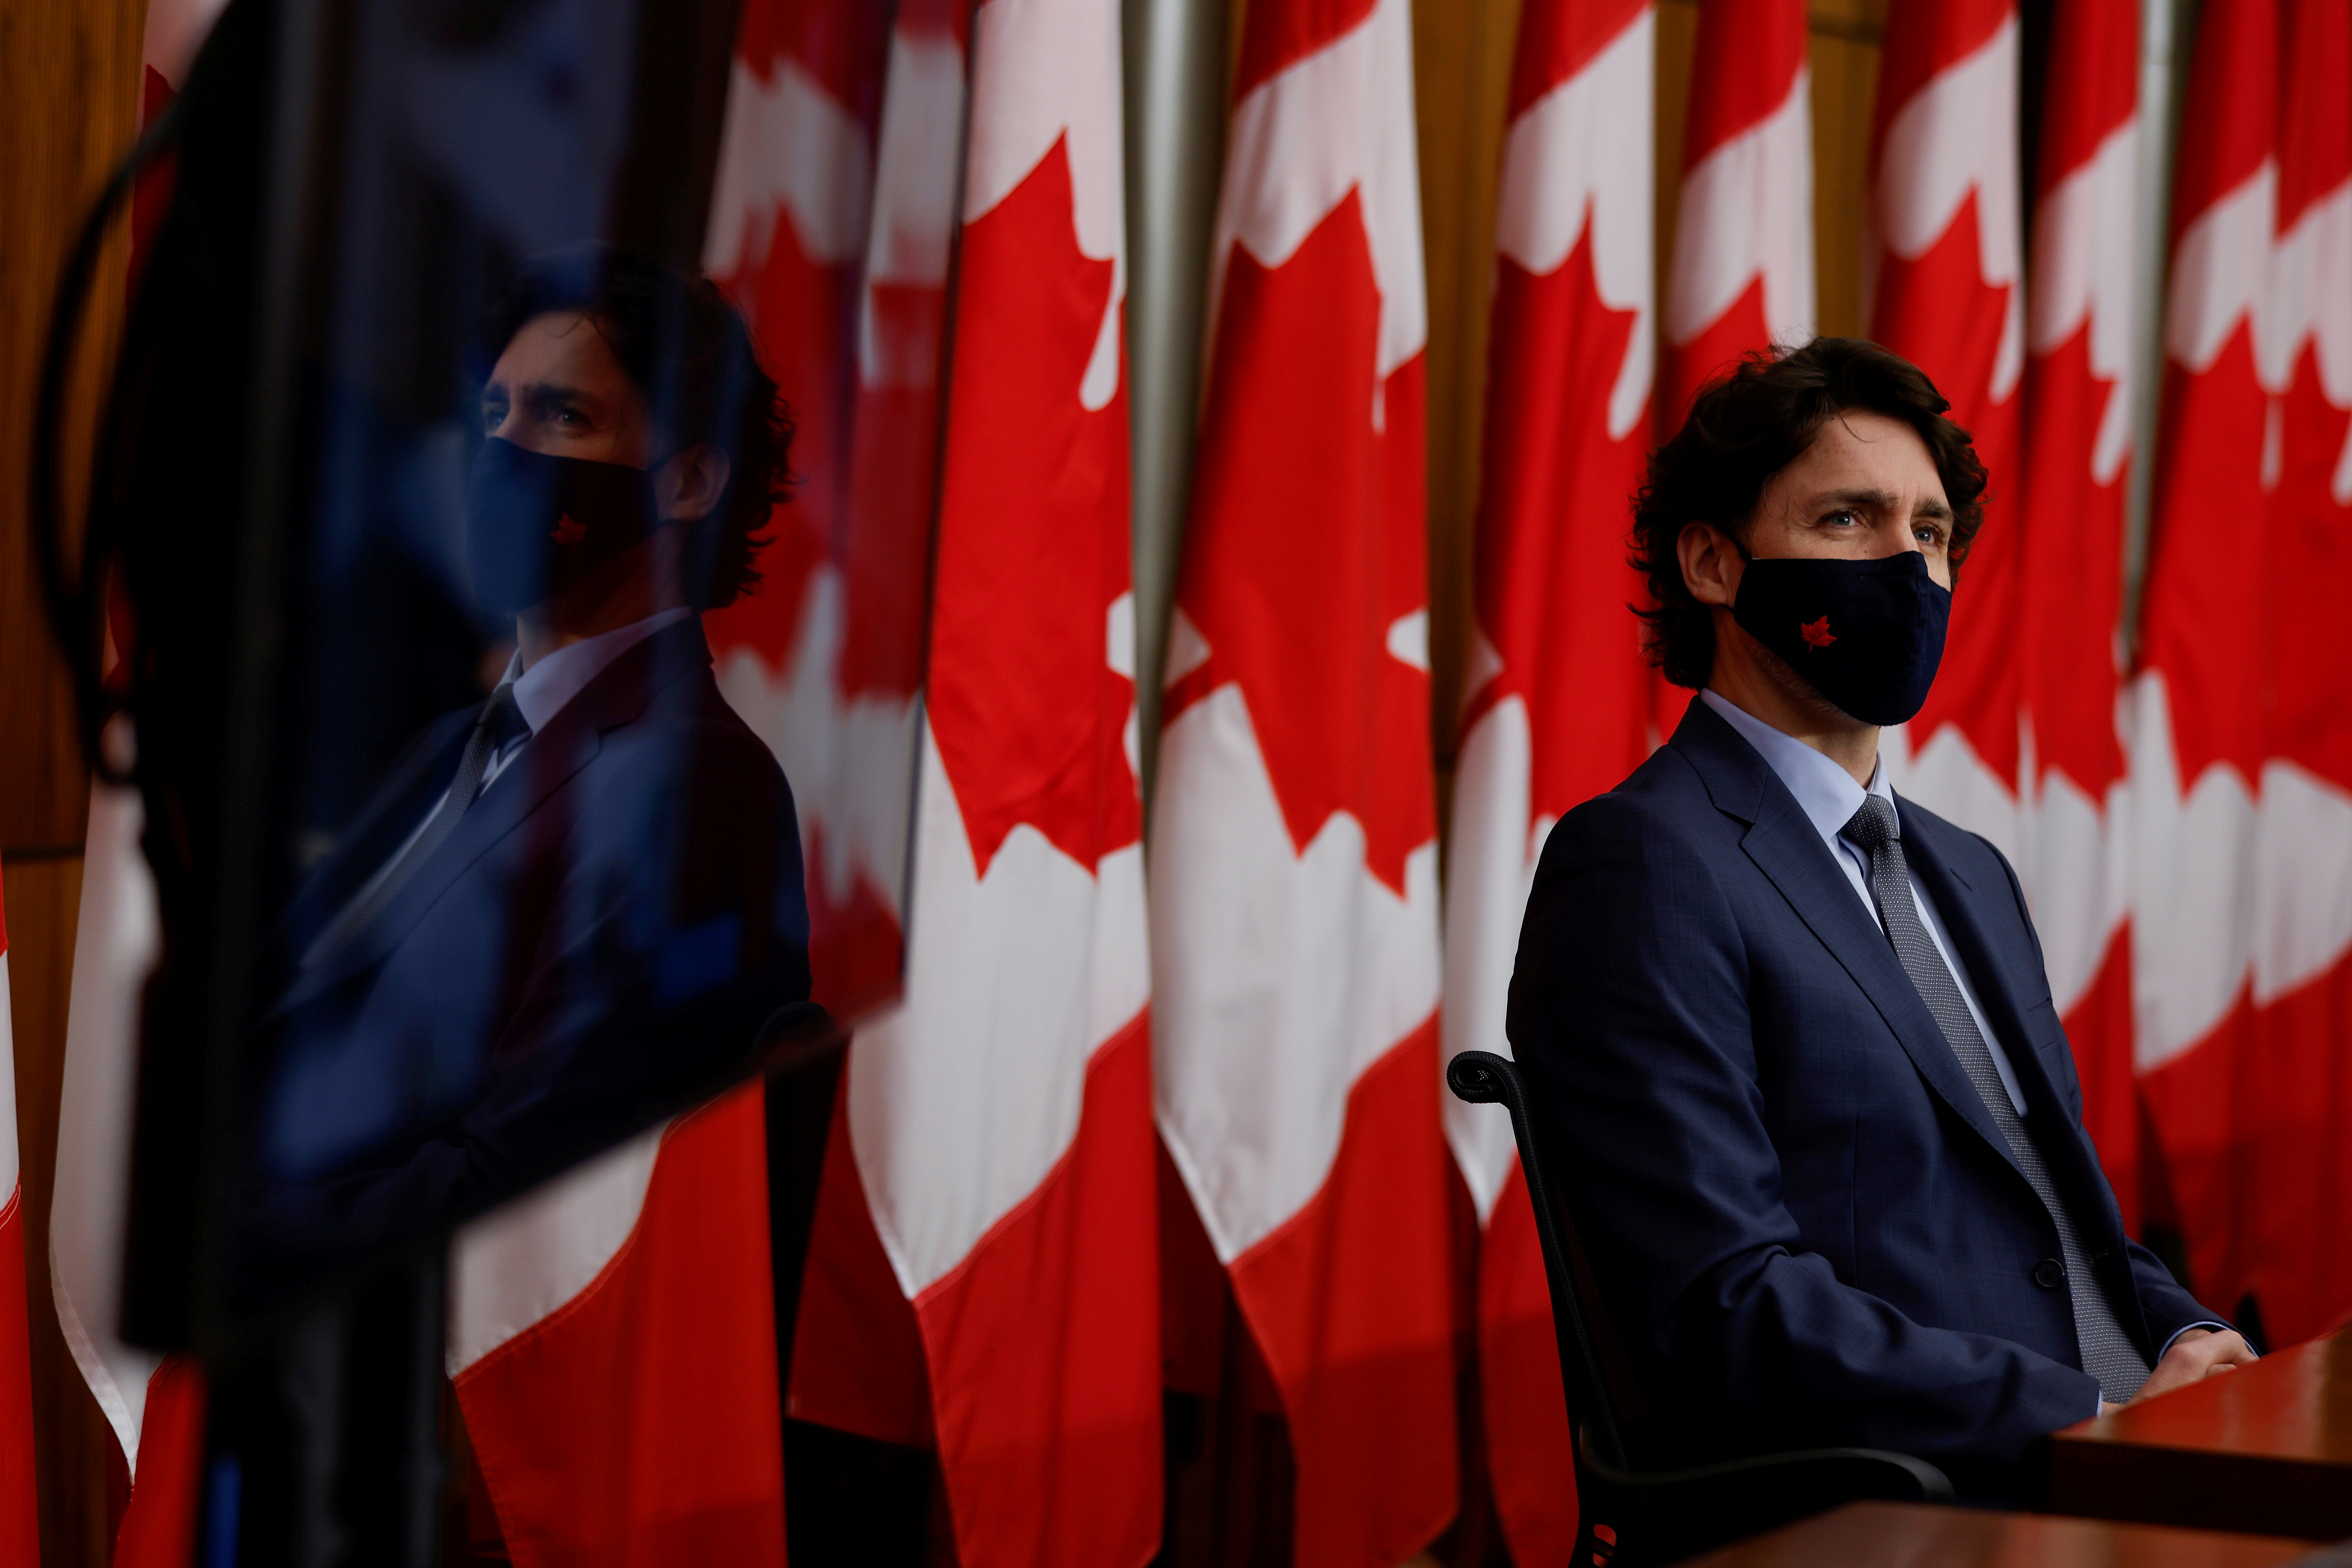 Canada's prime minister, Justin Trudeau, wearing a protective face mask, attends a news conference, as efforts continue to help slow the spread of the coronavirus disease (COVID-19), in Ottawa, Ontario, Canada March 5, 2021. REUTERS/Blair Gable/File Photo